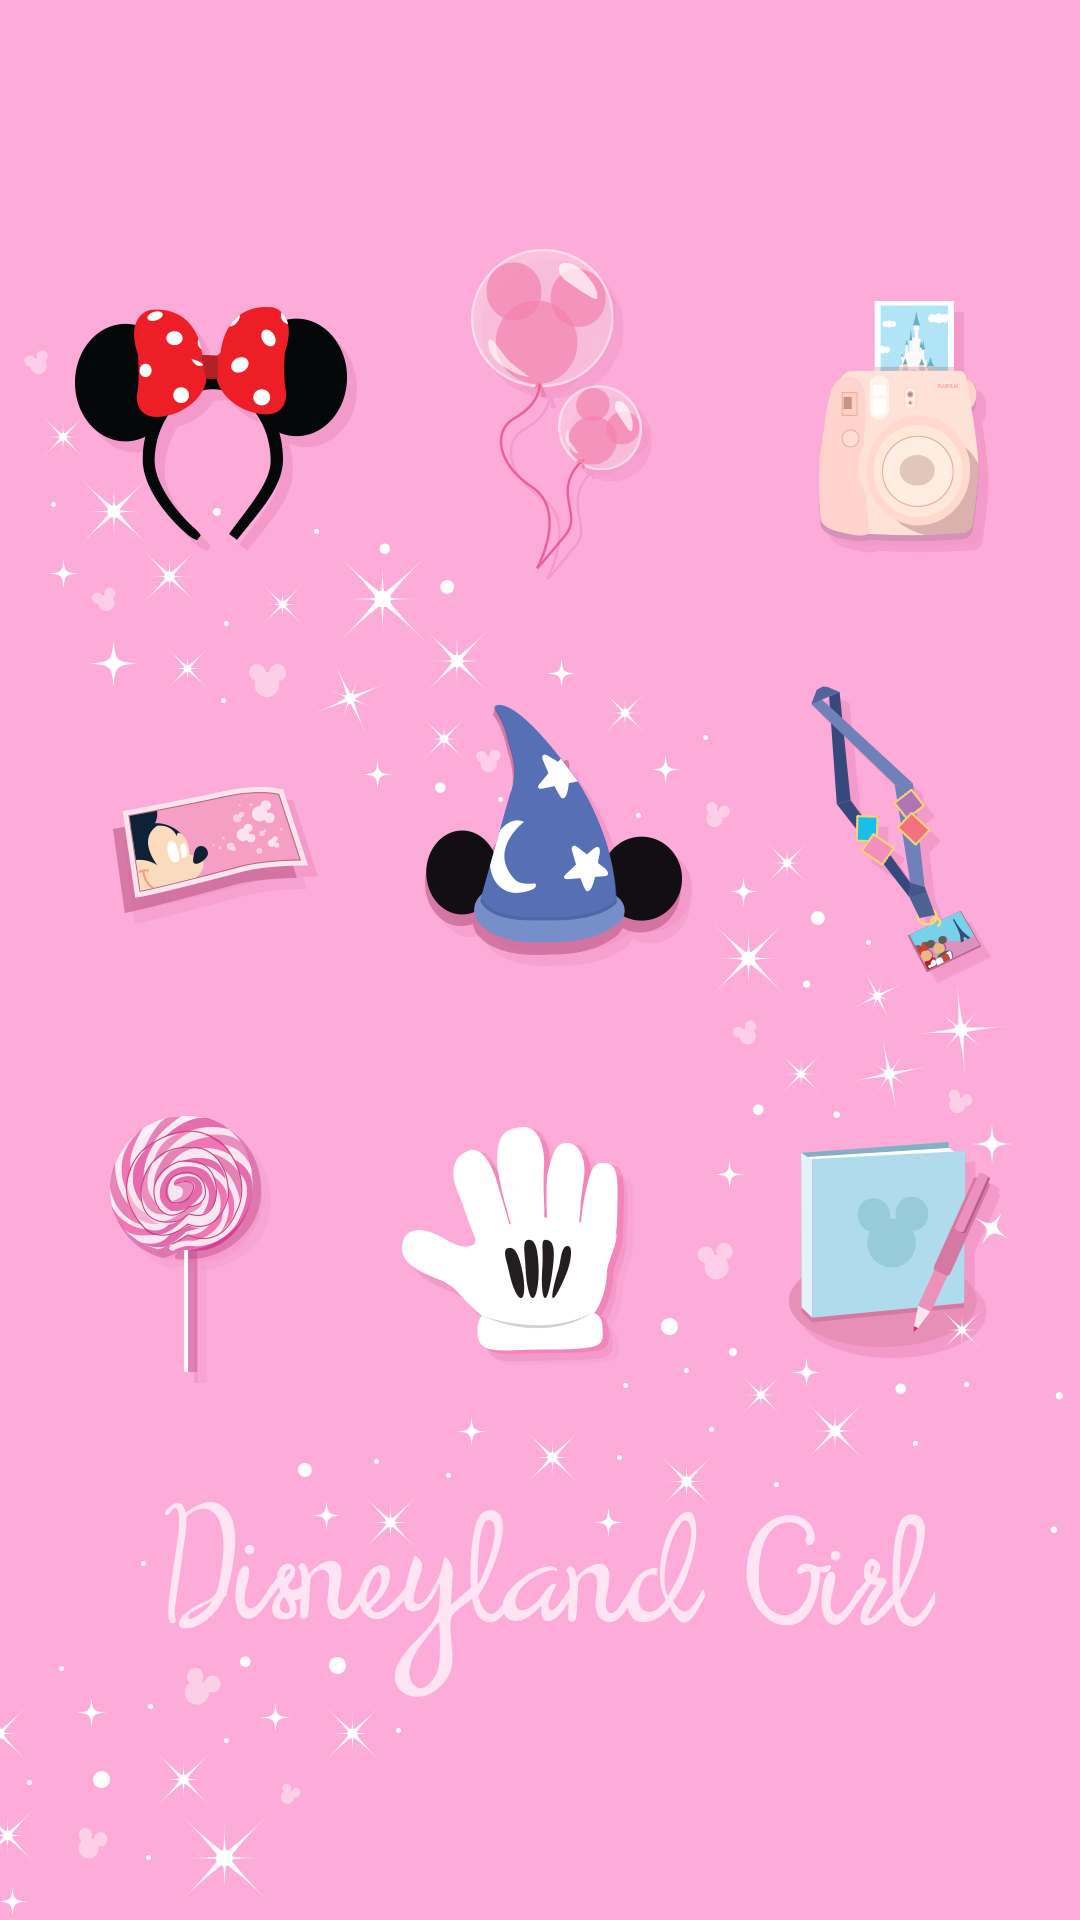 iPhone Wall tjn Disney phone wallpaper, Cute disney